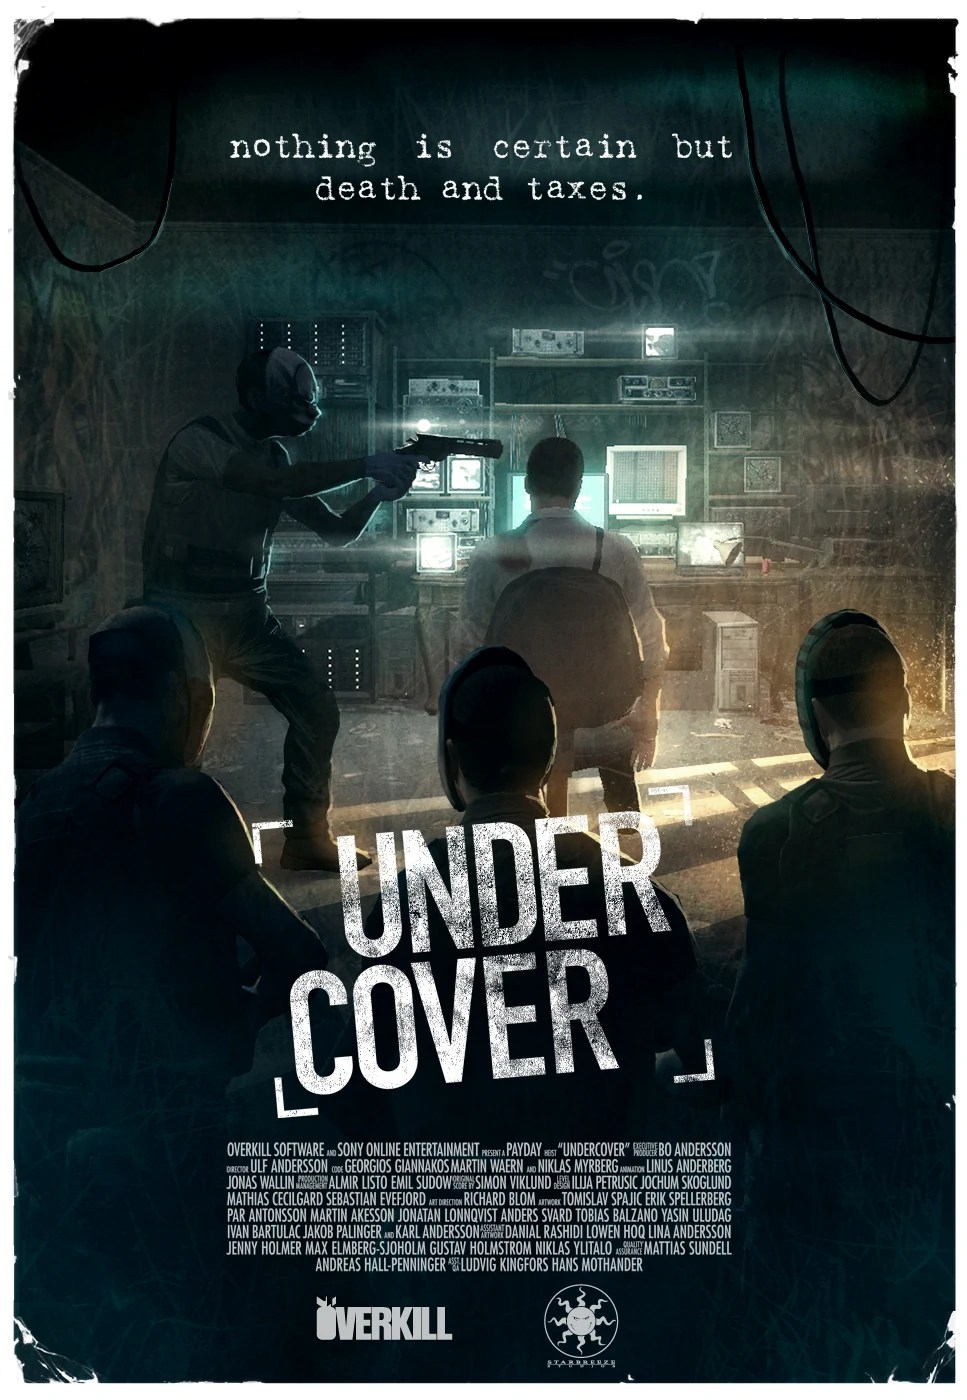 Undercover | Payday Wiki | FANDOM powered by Wikia